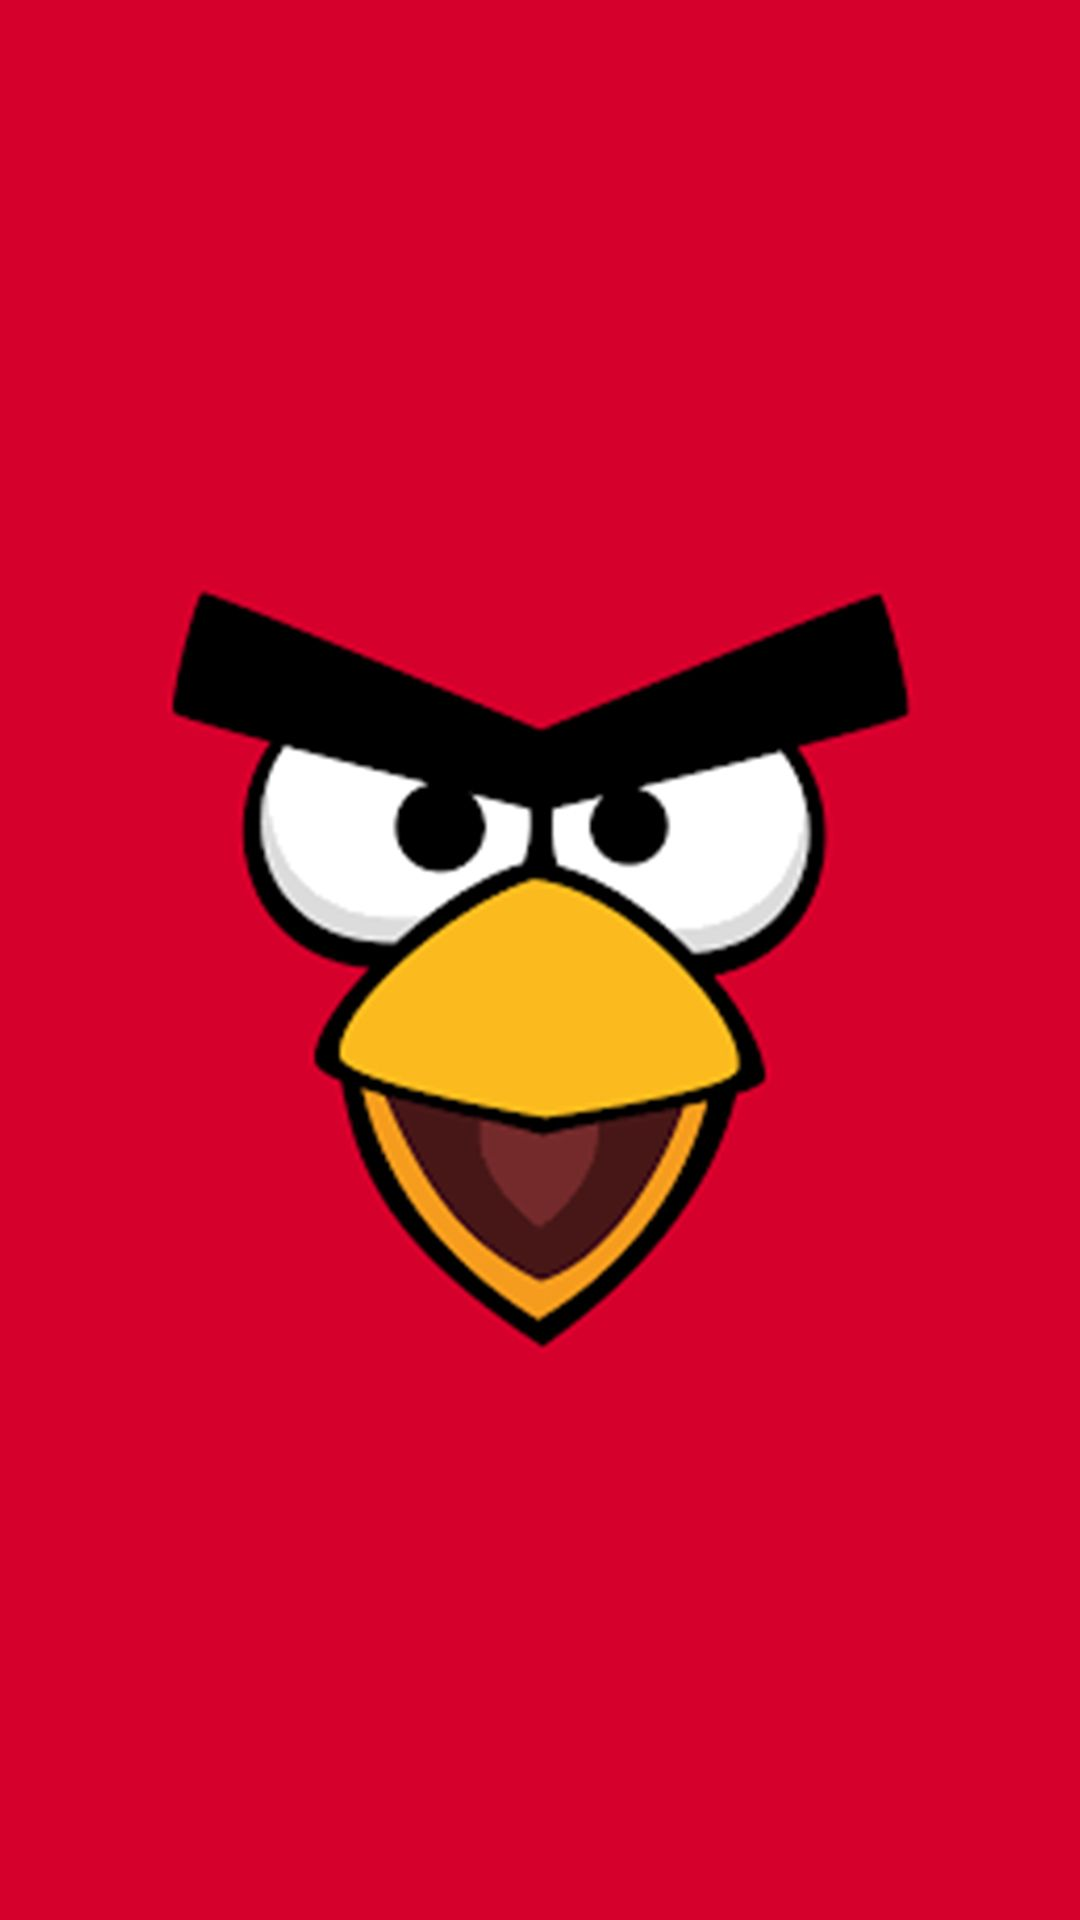 Angry Birds Hd Samsung Galaxy Phone Wallpaper Galaxy Phone Wallpaper Mobile Wallpaper Hd Wallpapers For Mobile